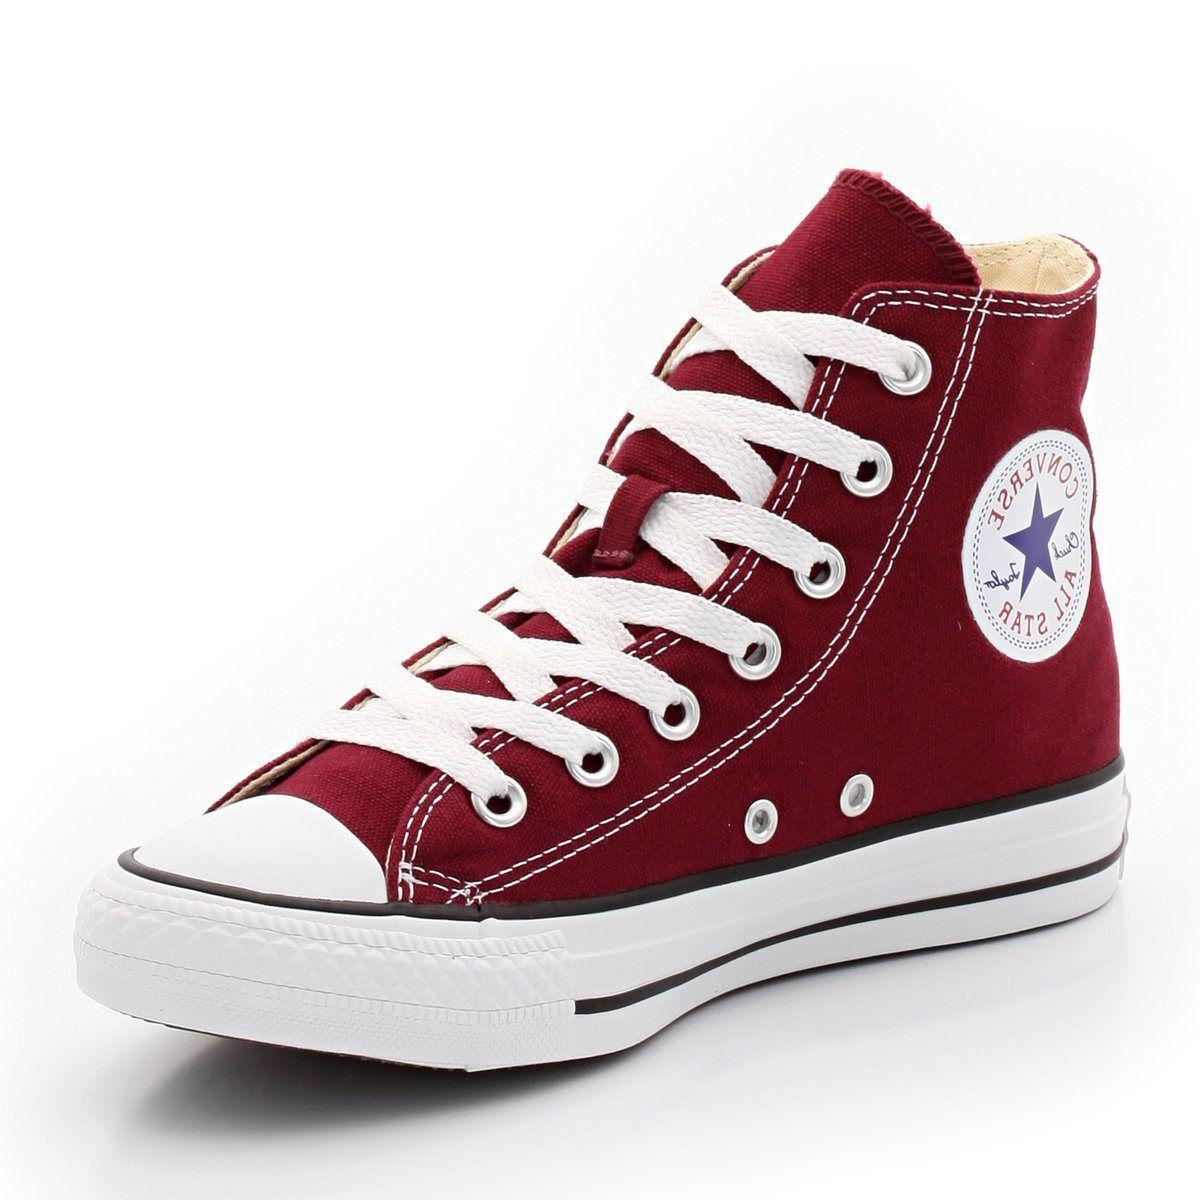 Converse Hi Star Sizes